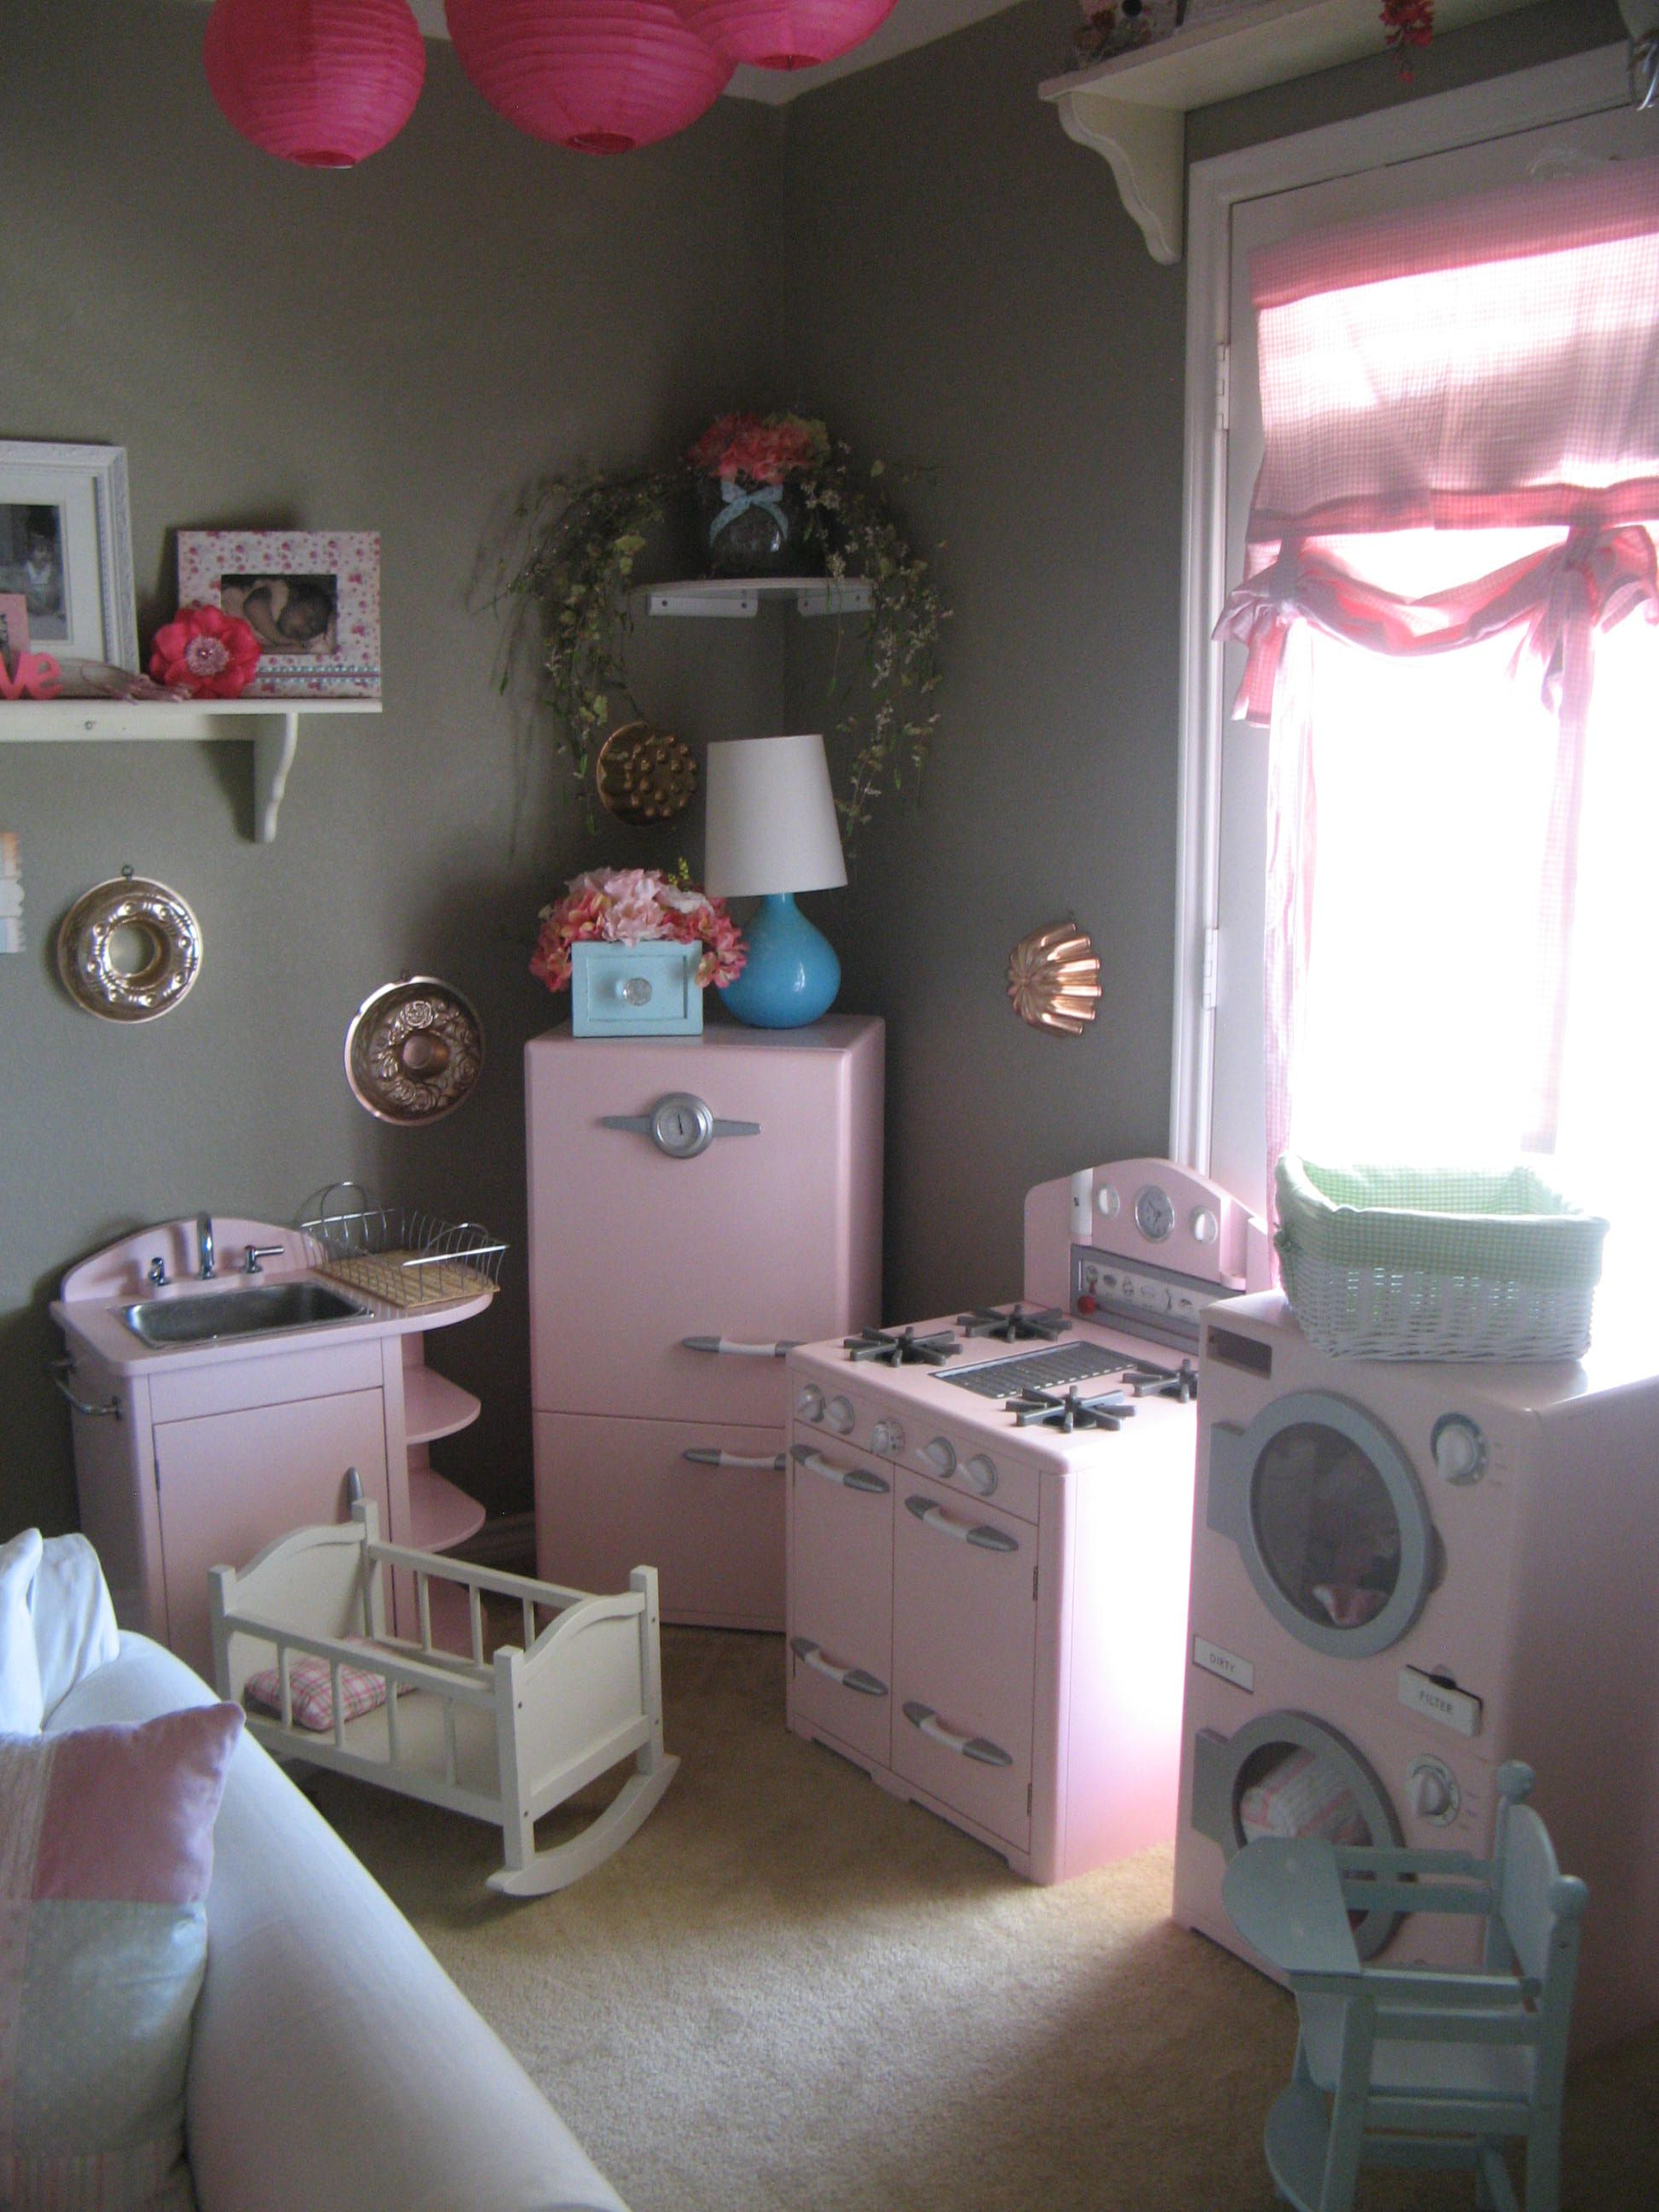 Pottery Barn Kids Pink Retro Kitchen Set I Found The Bronze Bundt Pans At Salvation Army For A Buck Piece